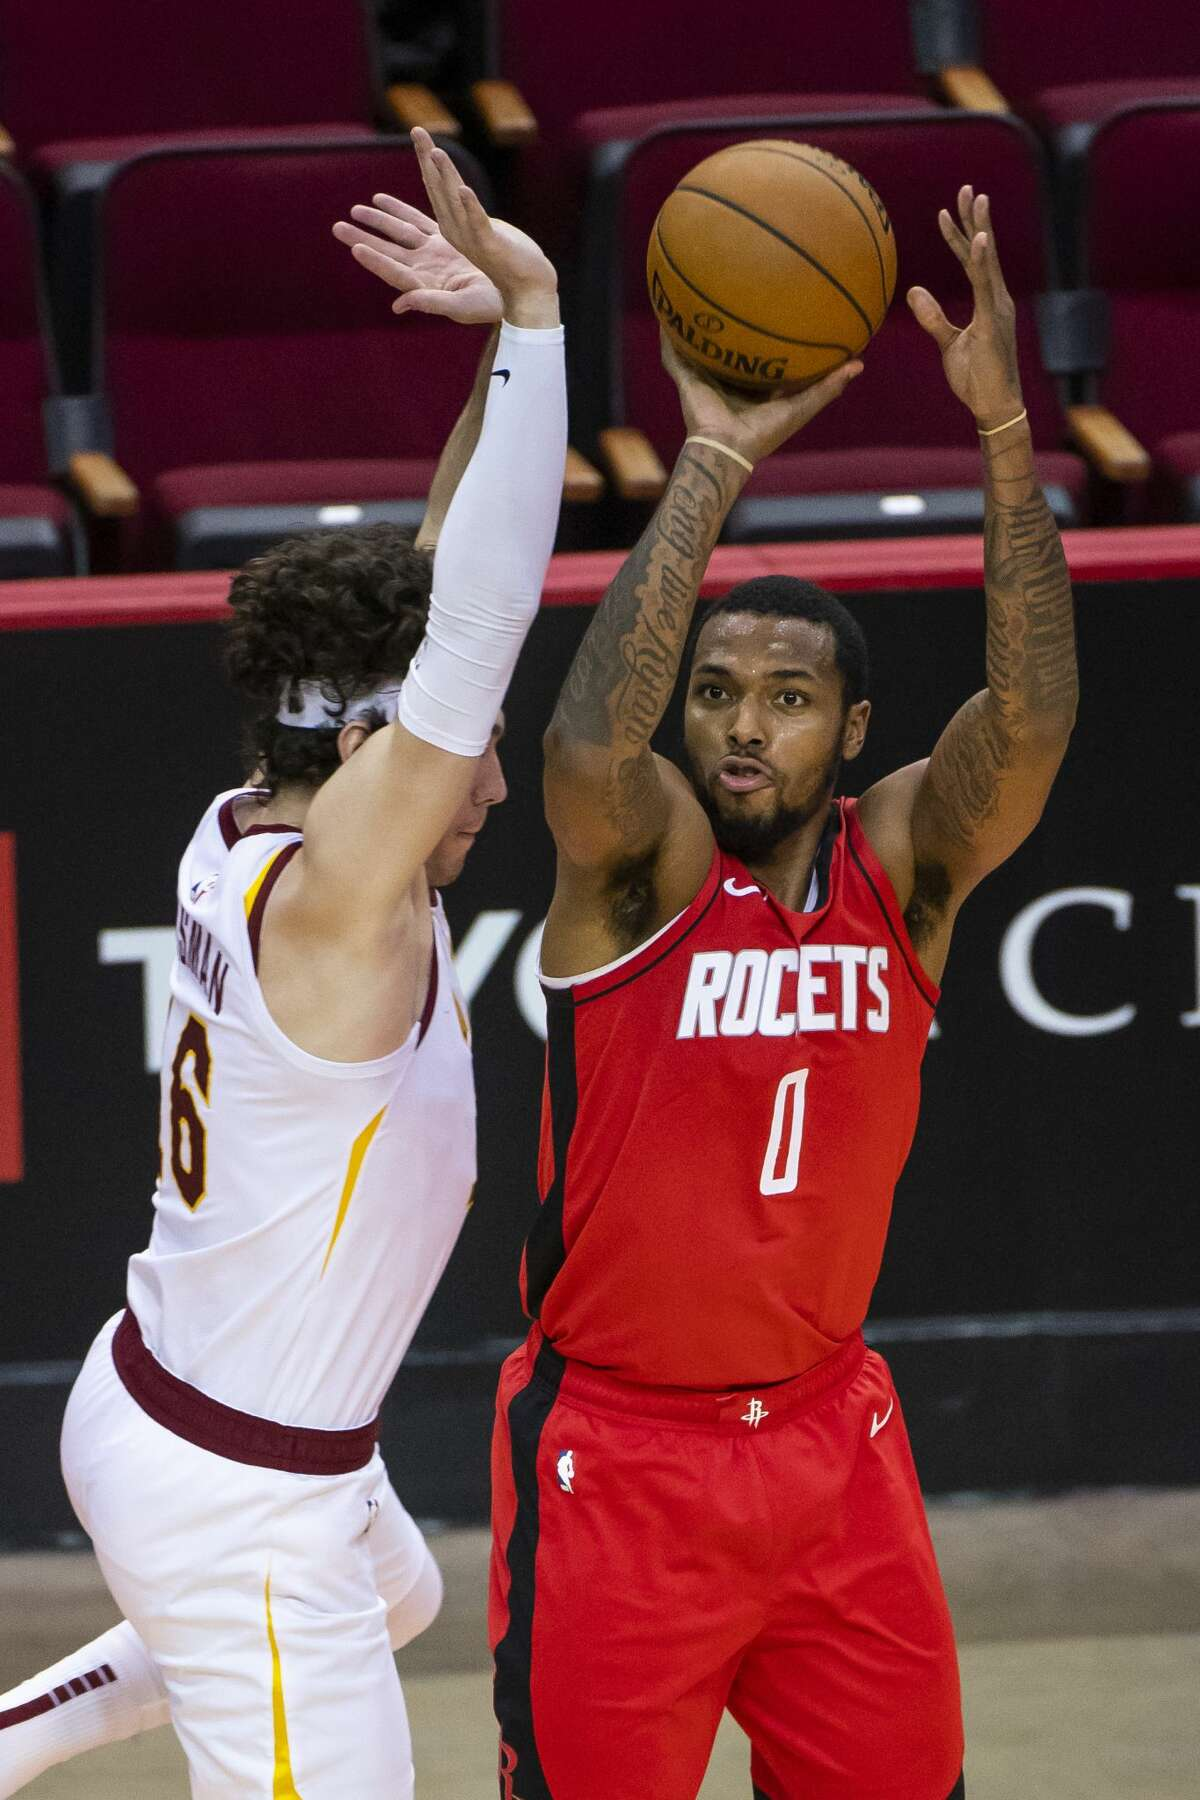 Houston Rockets guard Sterling Brown (0) shoots a three point shot defended by Cleveland Cavaliers forward Cedi Osman (16) during the third quarter of an NBA basketball game between the Houston Rockets and Cleveland Cavaliers on Monday, March 1, 2021, at Toyota Center in Houston.